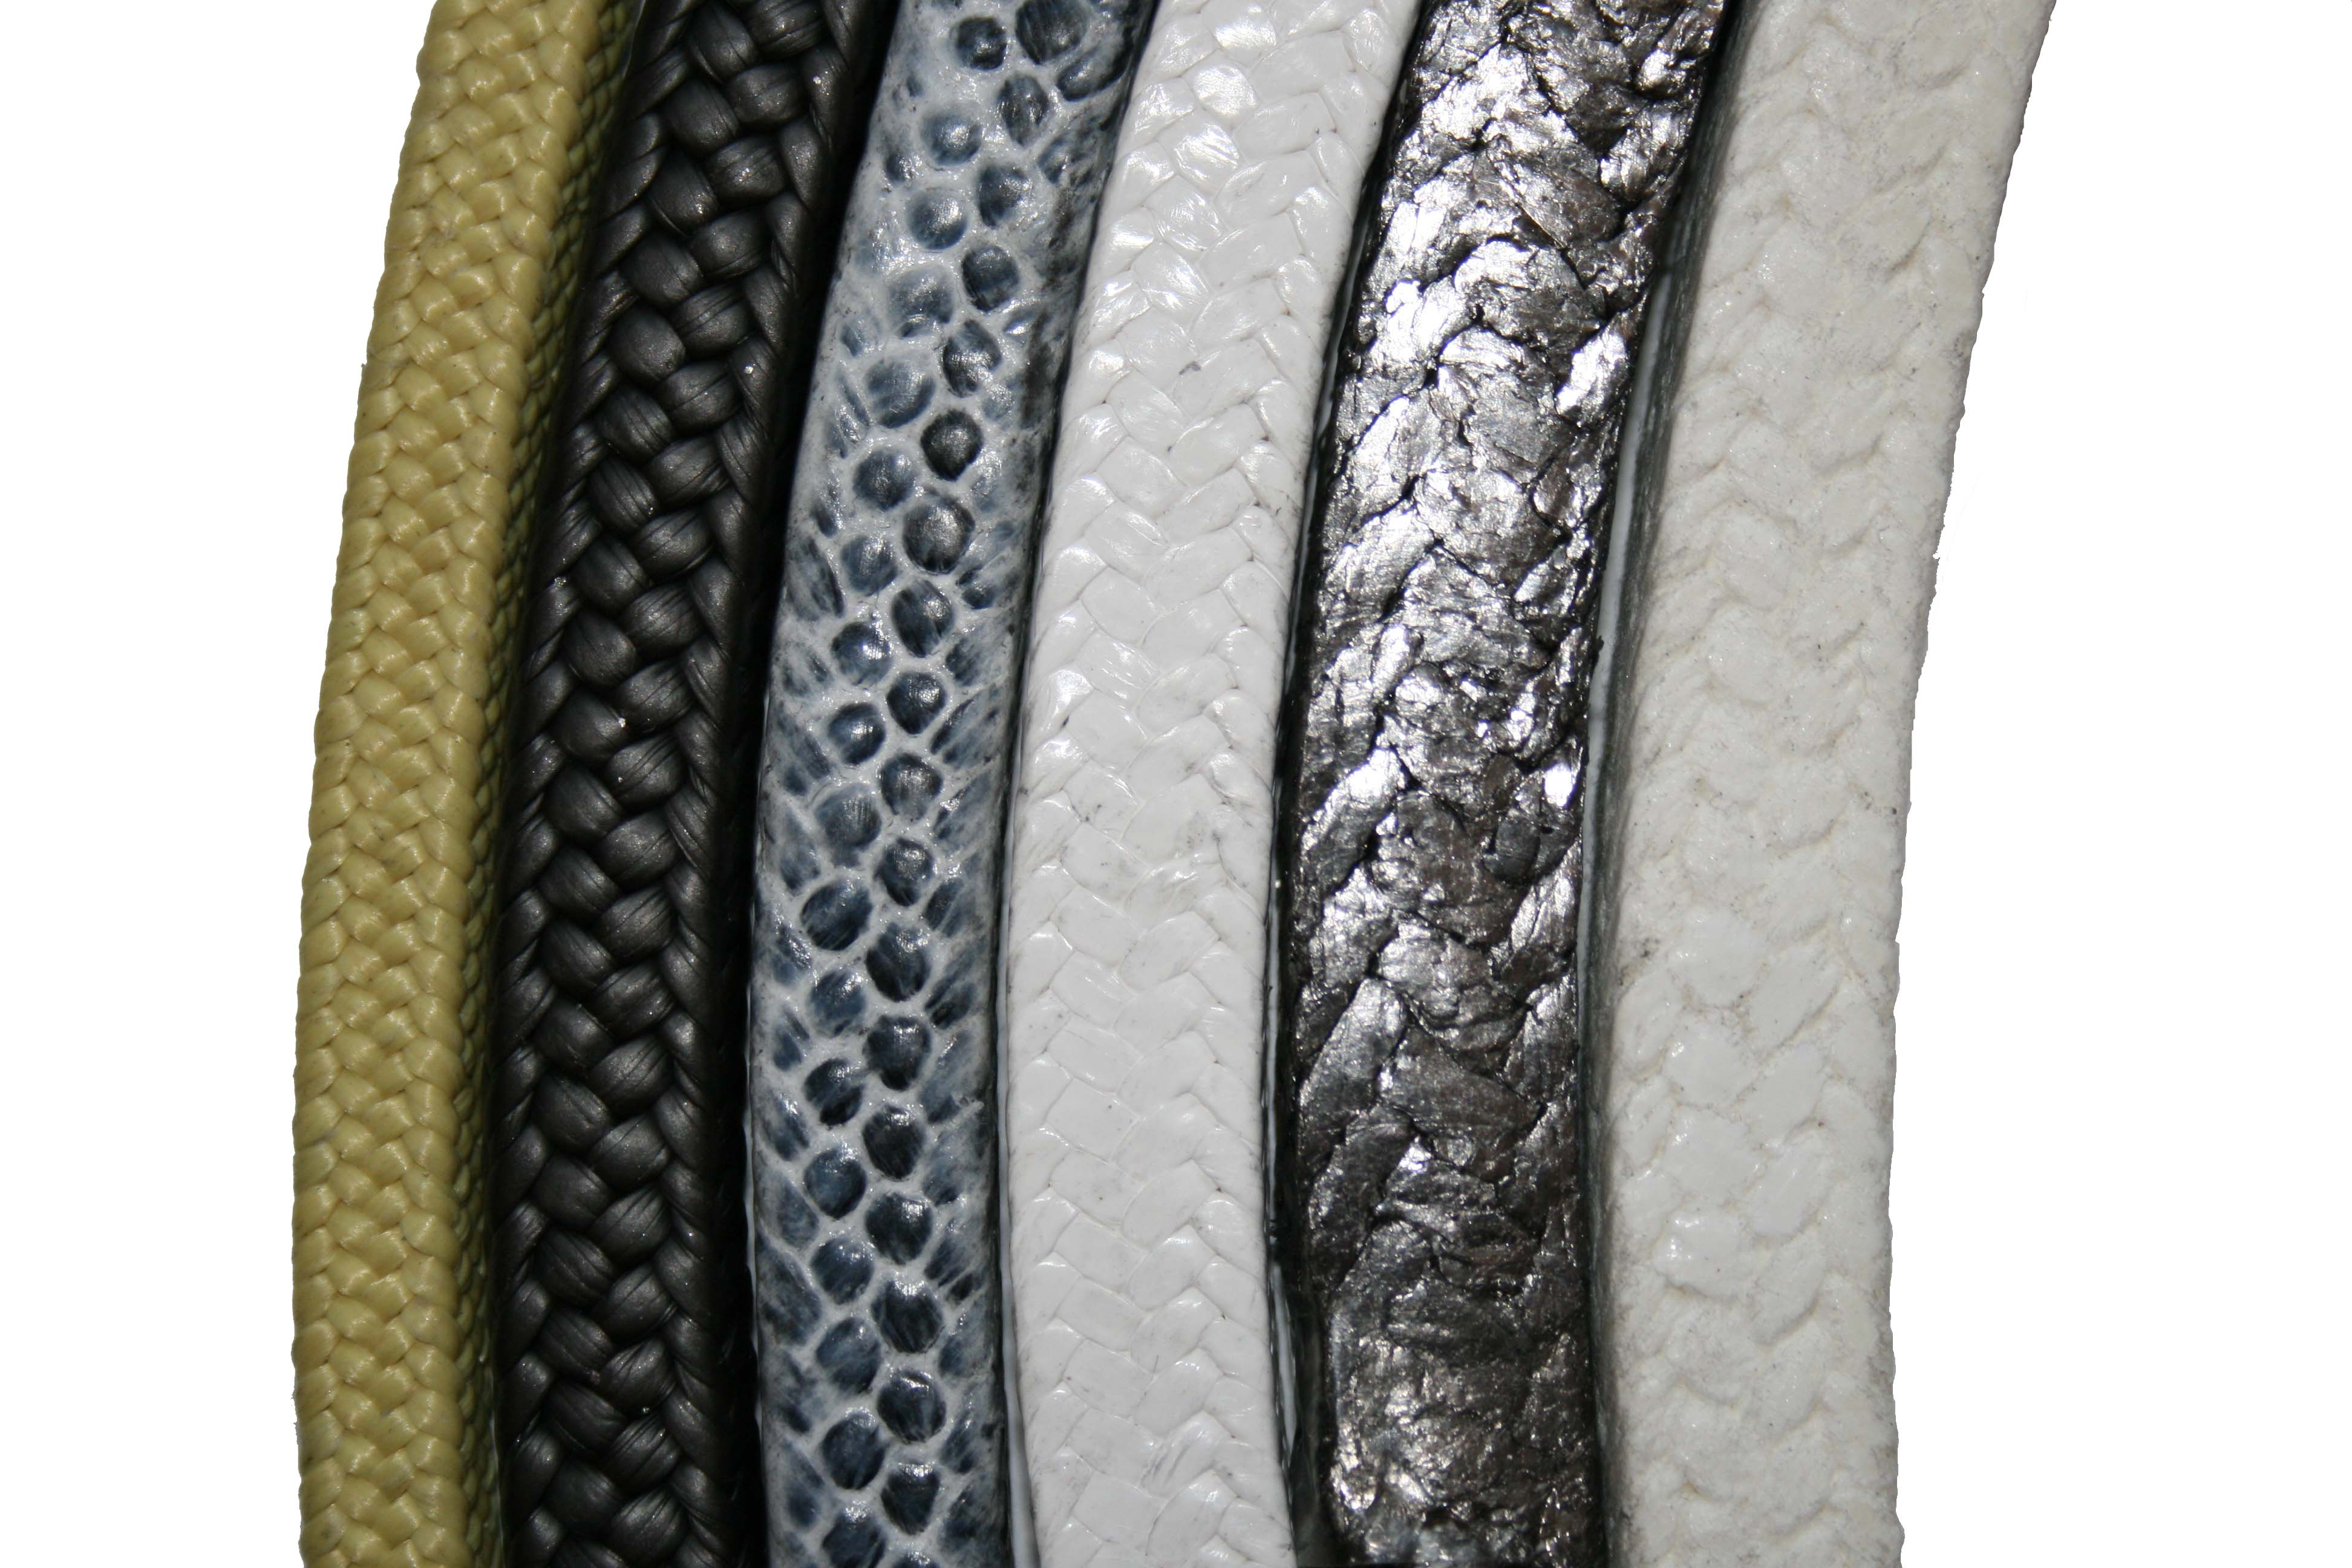 Yc Industries Inc Braided Packing